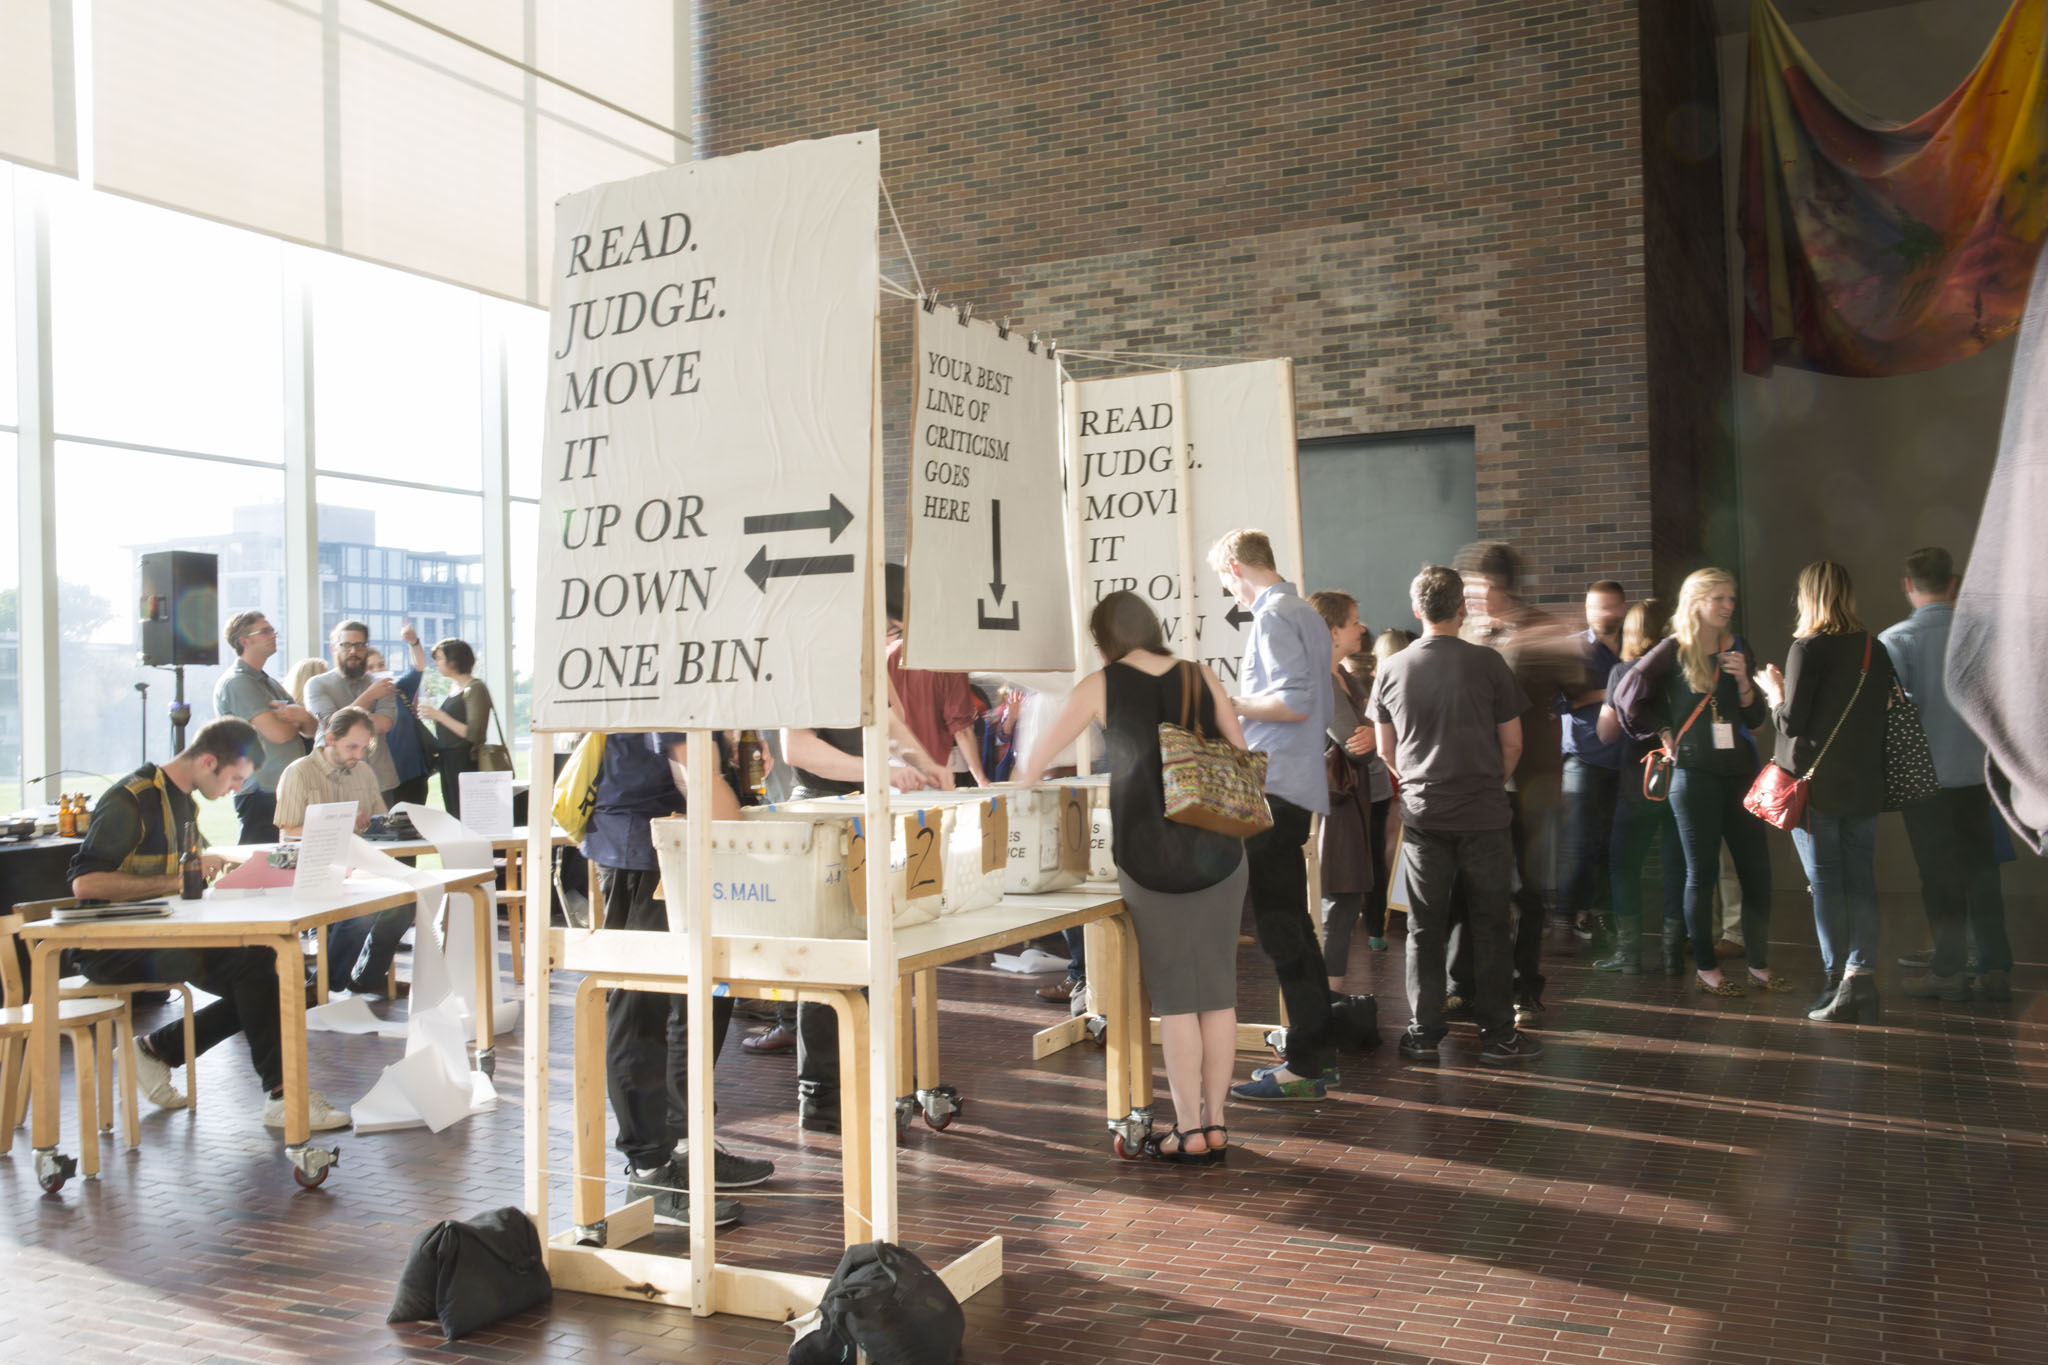 The conference kicked off with the Everyone's a Critic opening event, featuring a live criticism game by Revolver. Photo: Walker Art Center